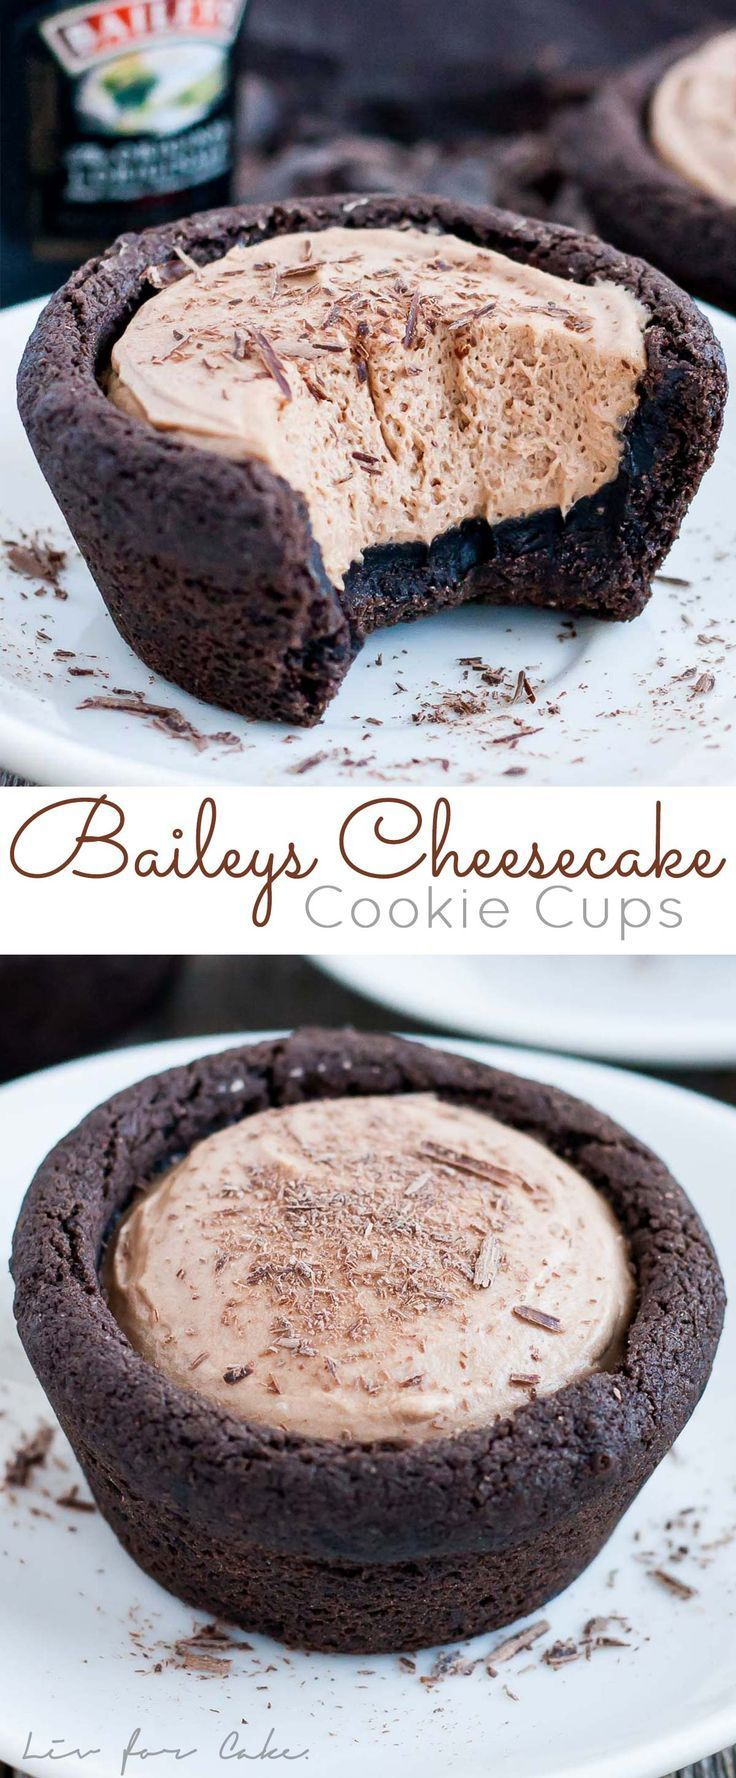 Chocolate cookie cups filled with a chocolate Baileys cheesecake. The perfect bite-sized indulgence! | http://livforcake.com